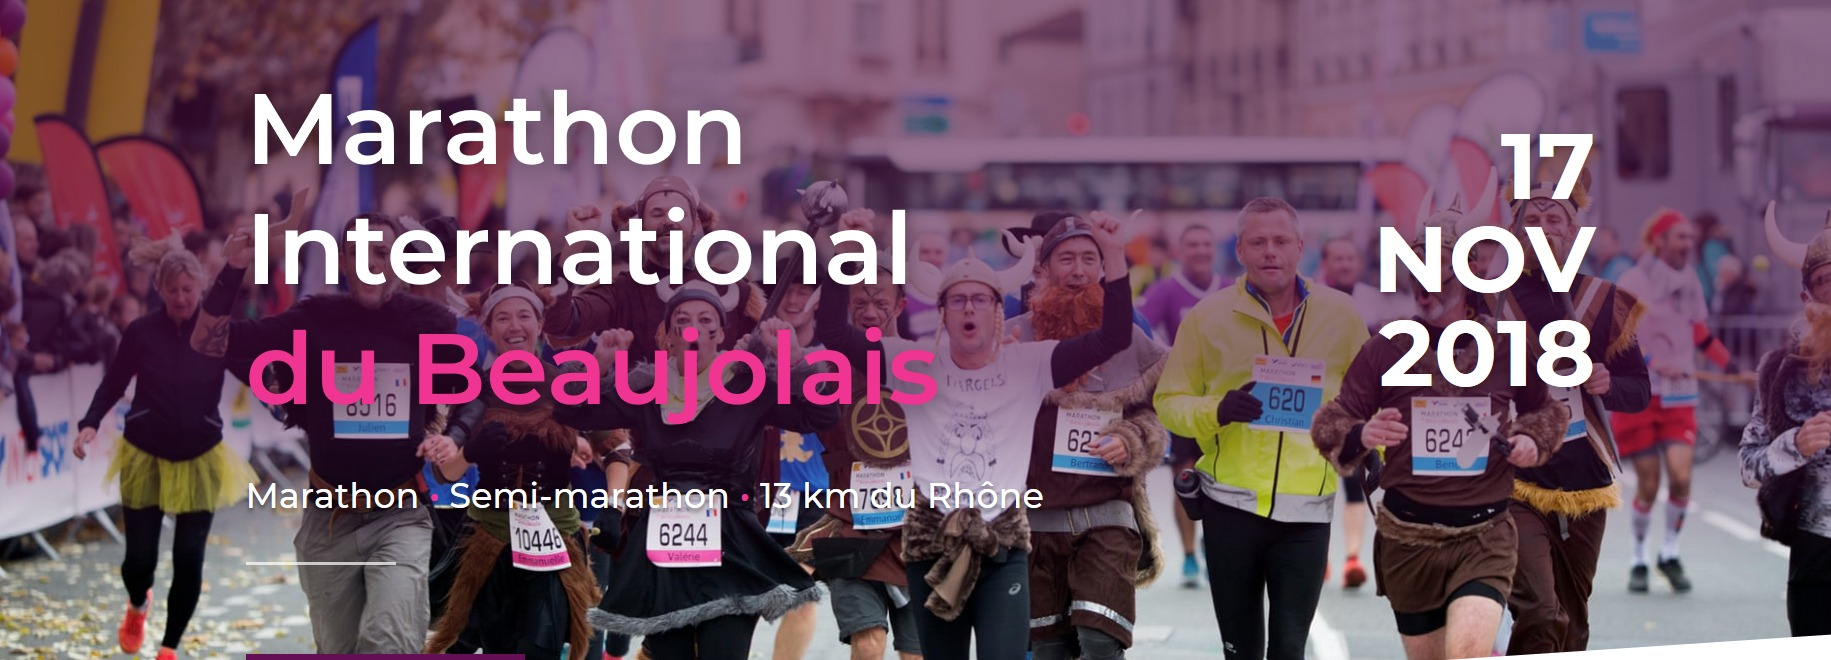 Marathon International du Beaujolais